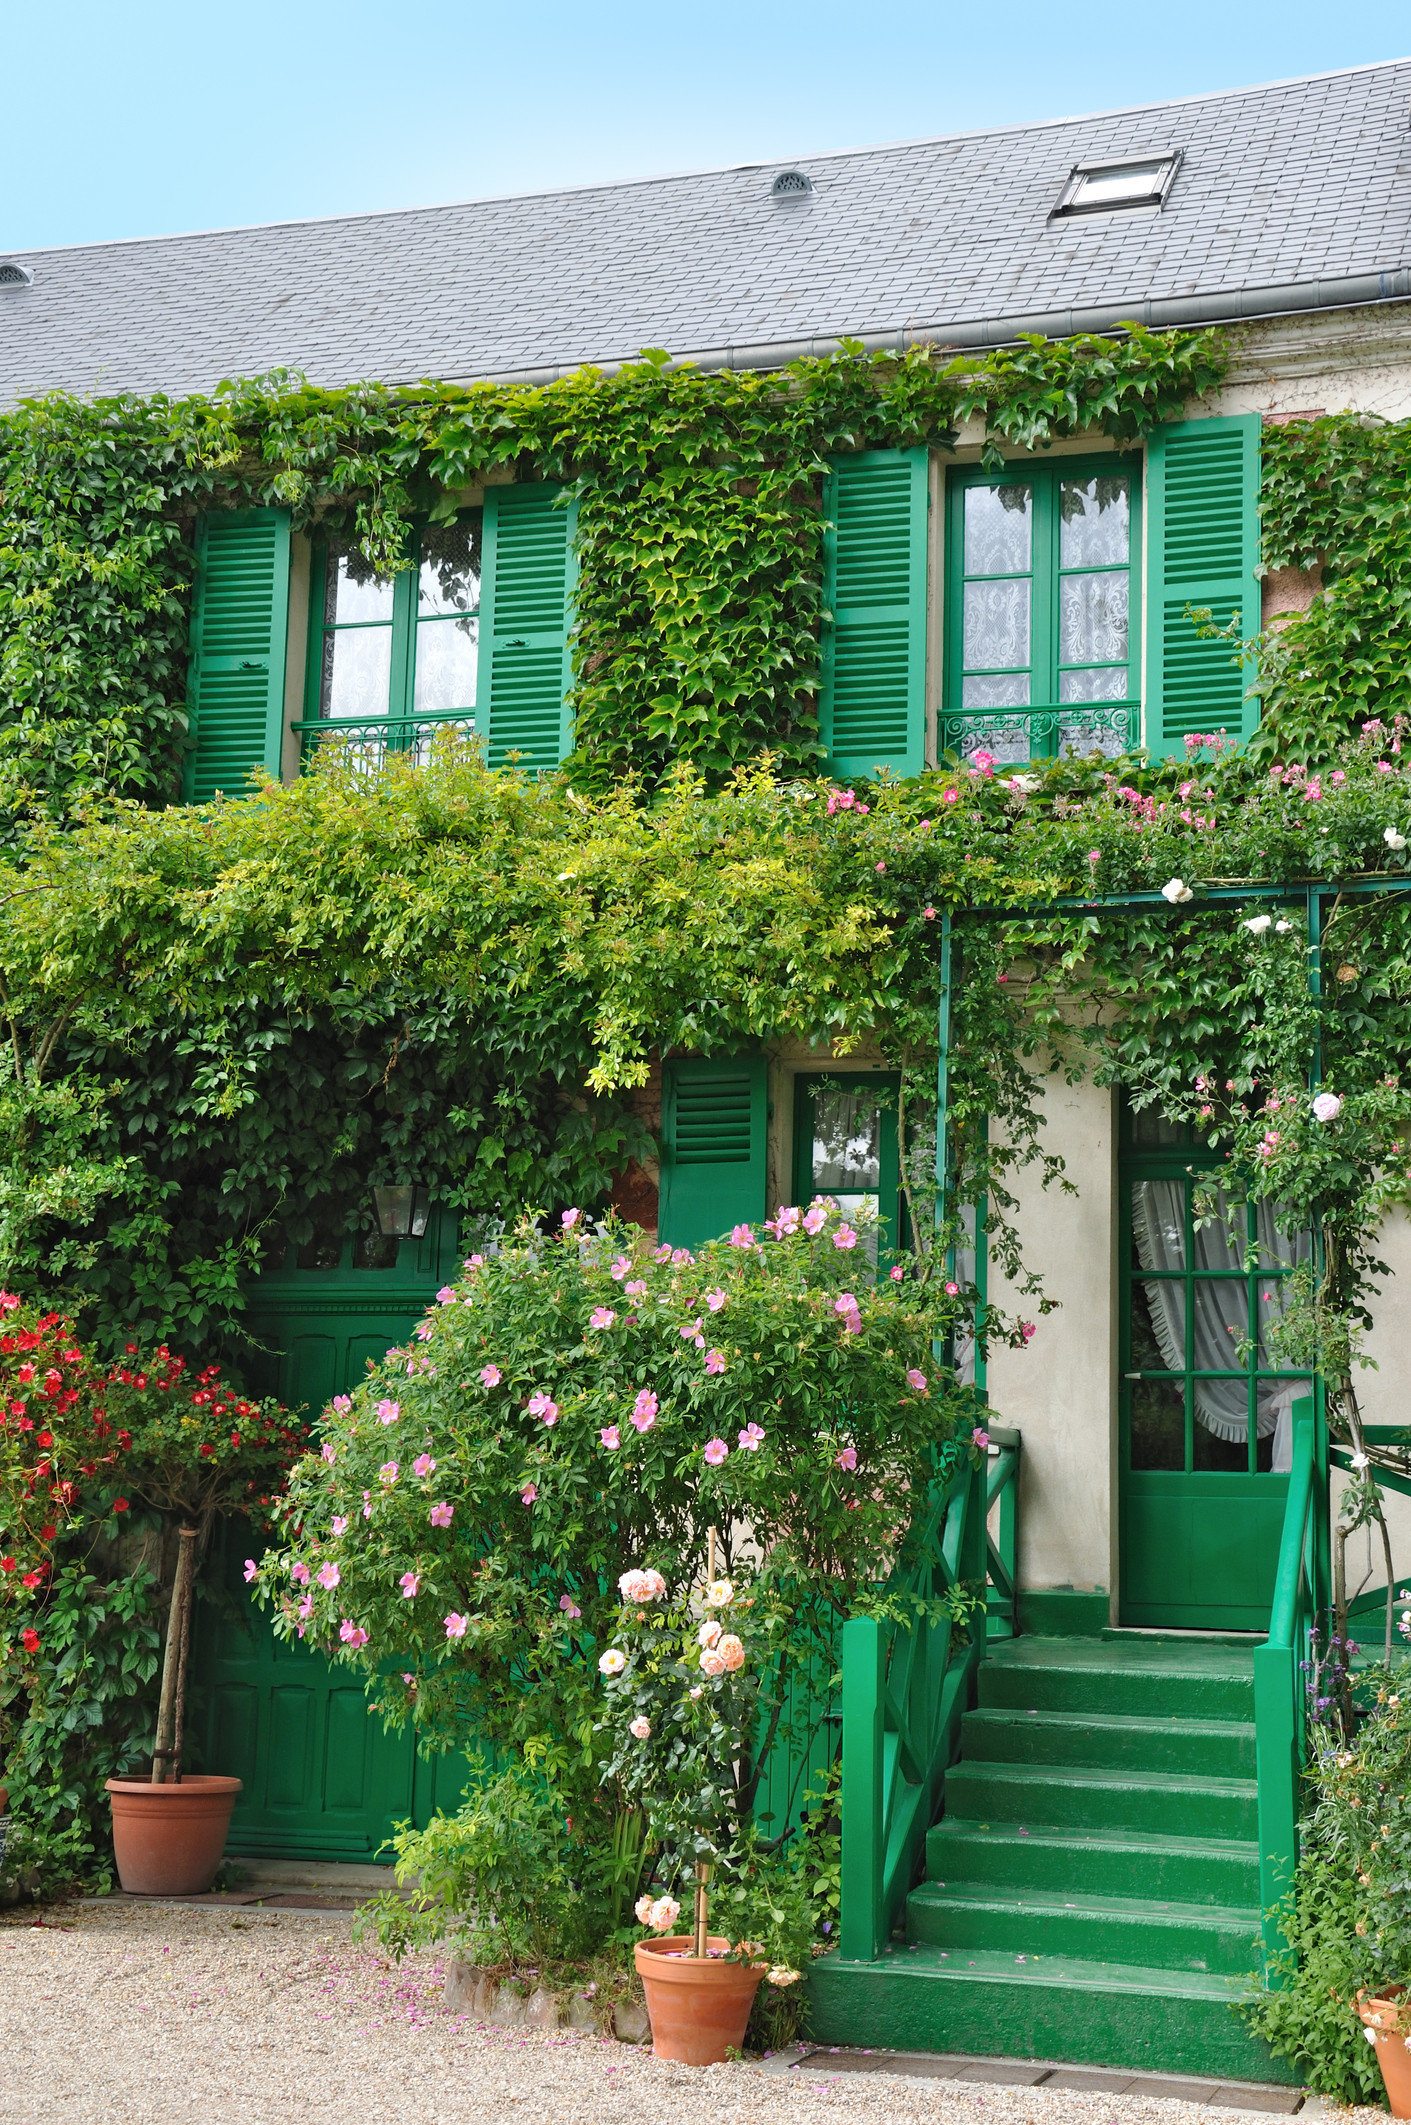 Trip Ideas outdoor tree building green house flower Garden botany yard plant home backyard estate cottage Courtyard lawn facade outdoor structure shrub shed porch bushes